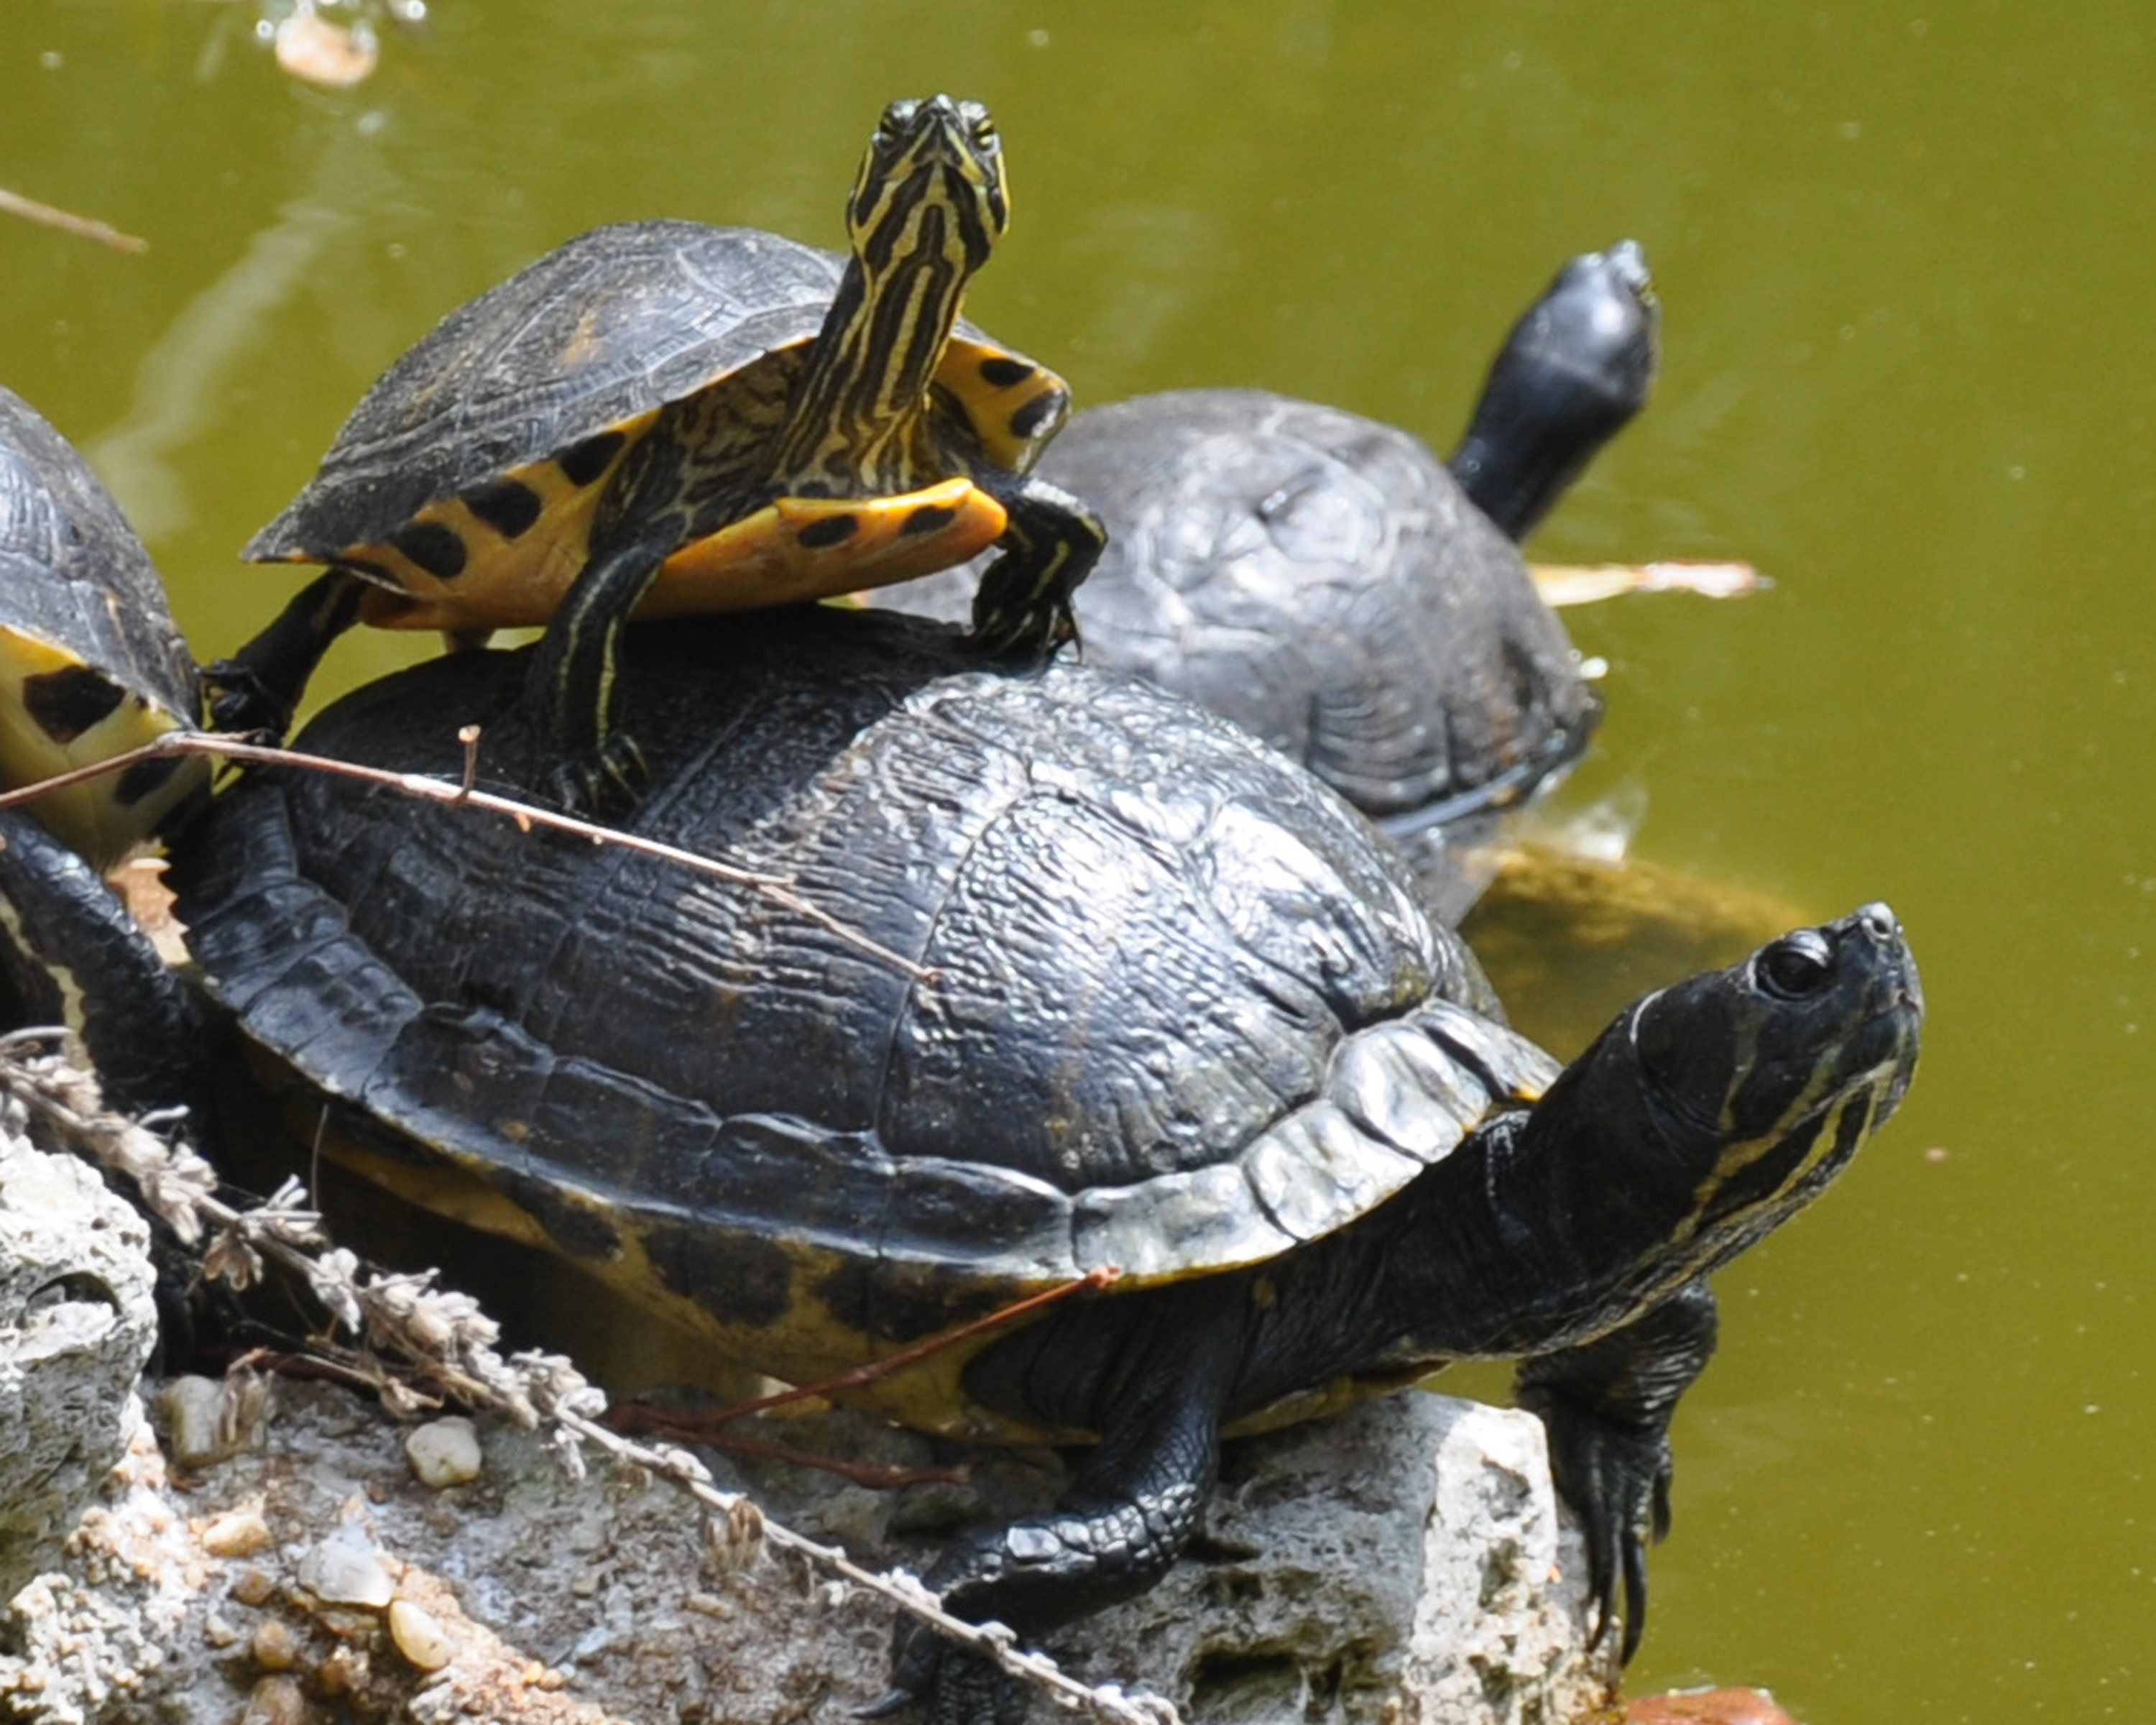 turtles, aquatic turtles and marine turtles. Twenty species of turtles ...